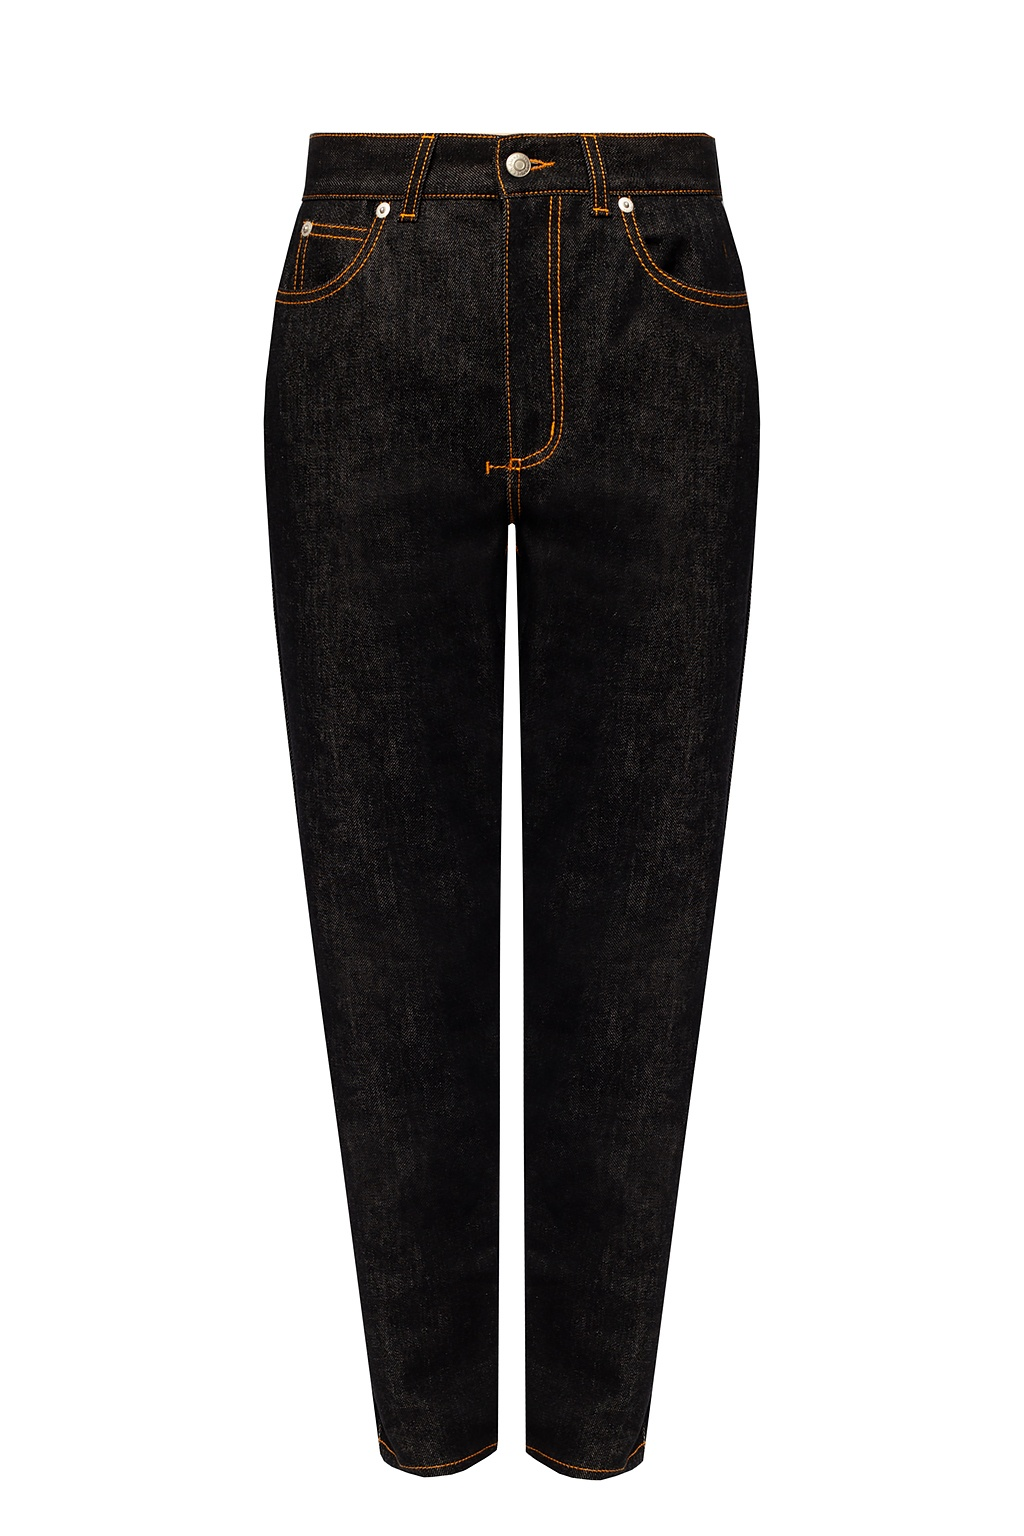 Alexander McQueen Logo-patched jeans